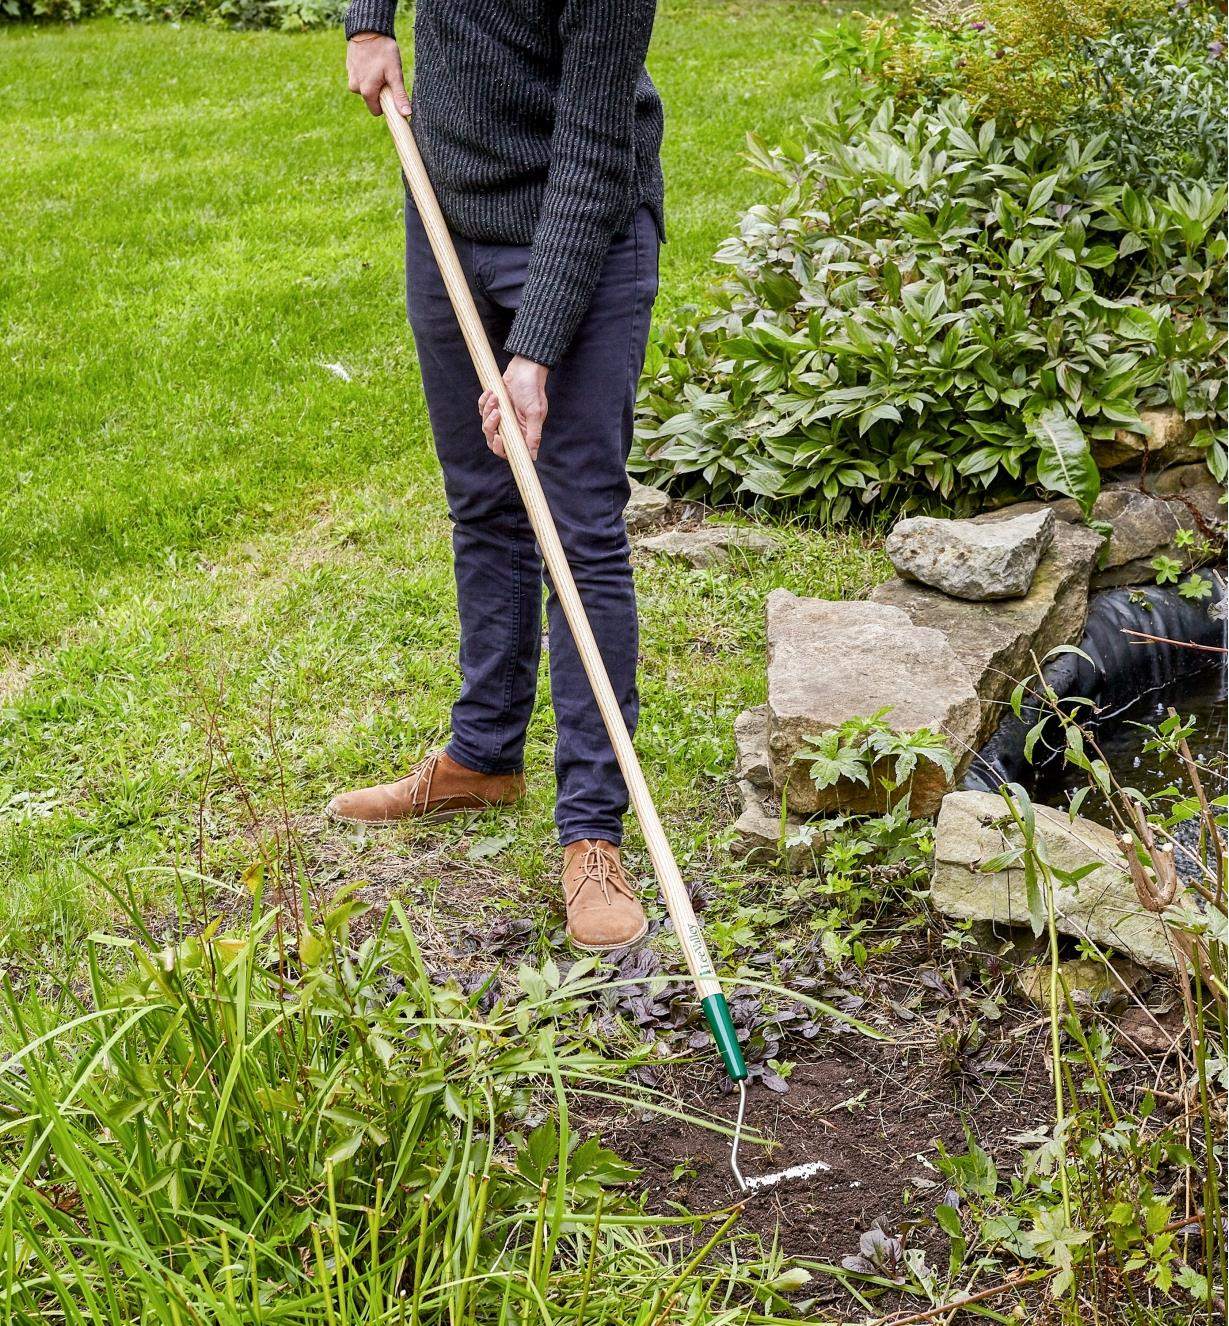 Using a Lee Valley Swoe to weed in a garden